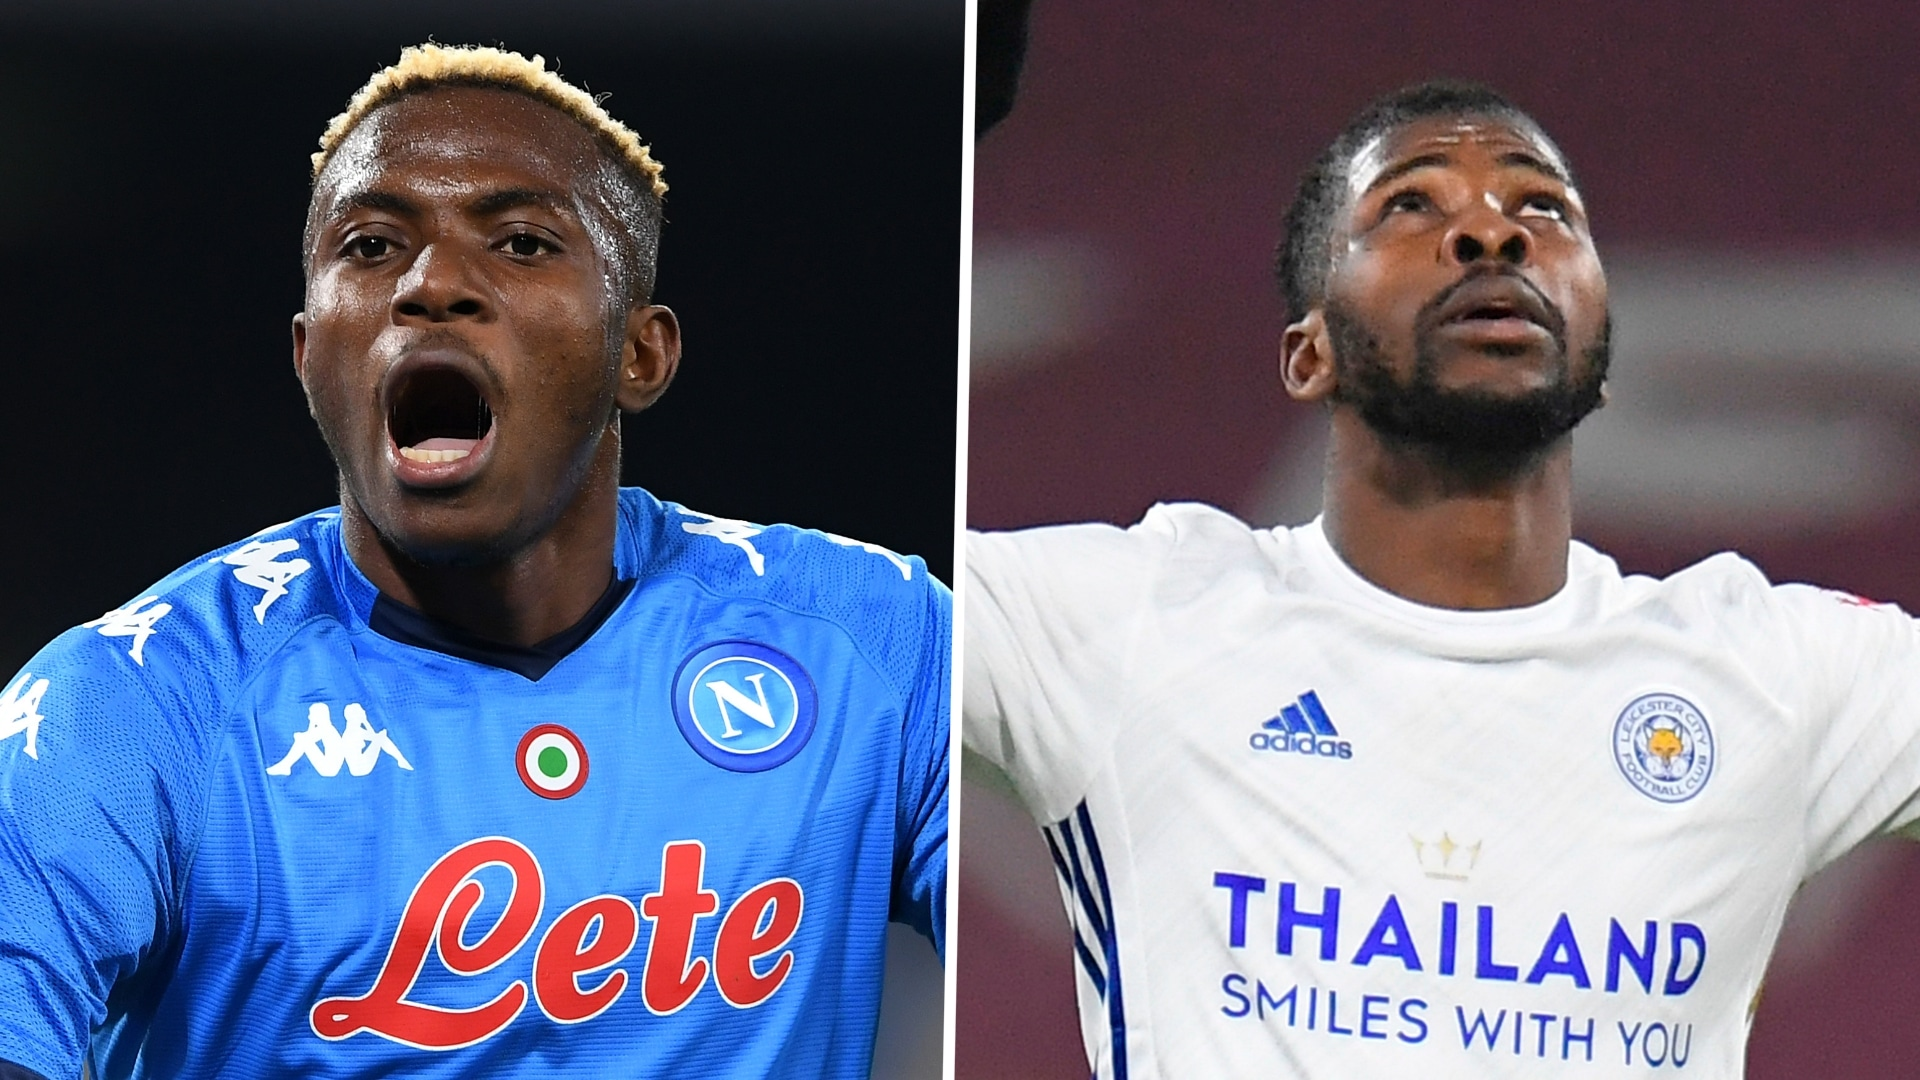 Iheanacho Vs Osimhen: Allow Rohr To Decide His Choice Of Striker To Lead Super Eagles Attack In AFCON Qualifiers – Adepoju